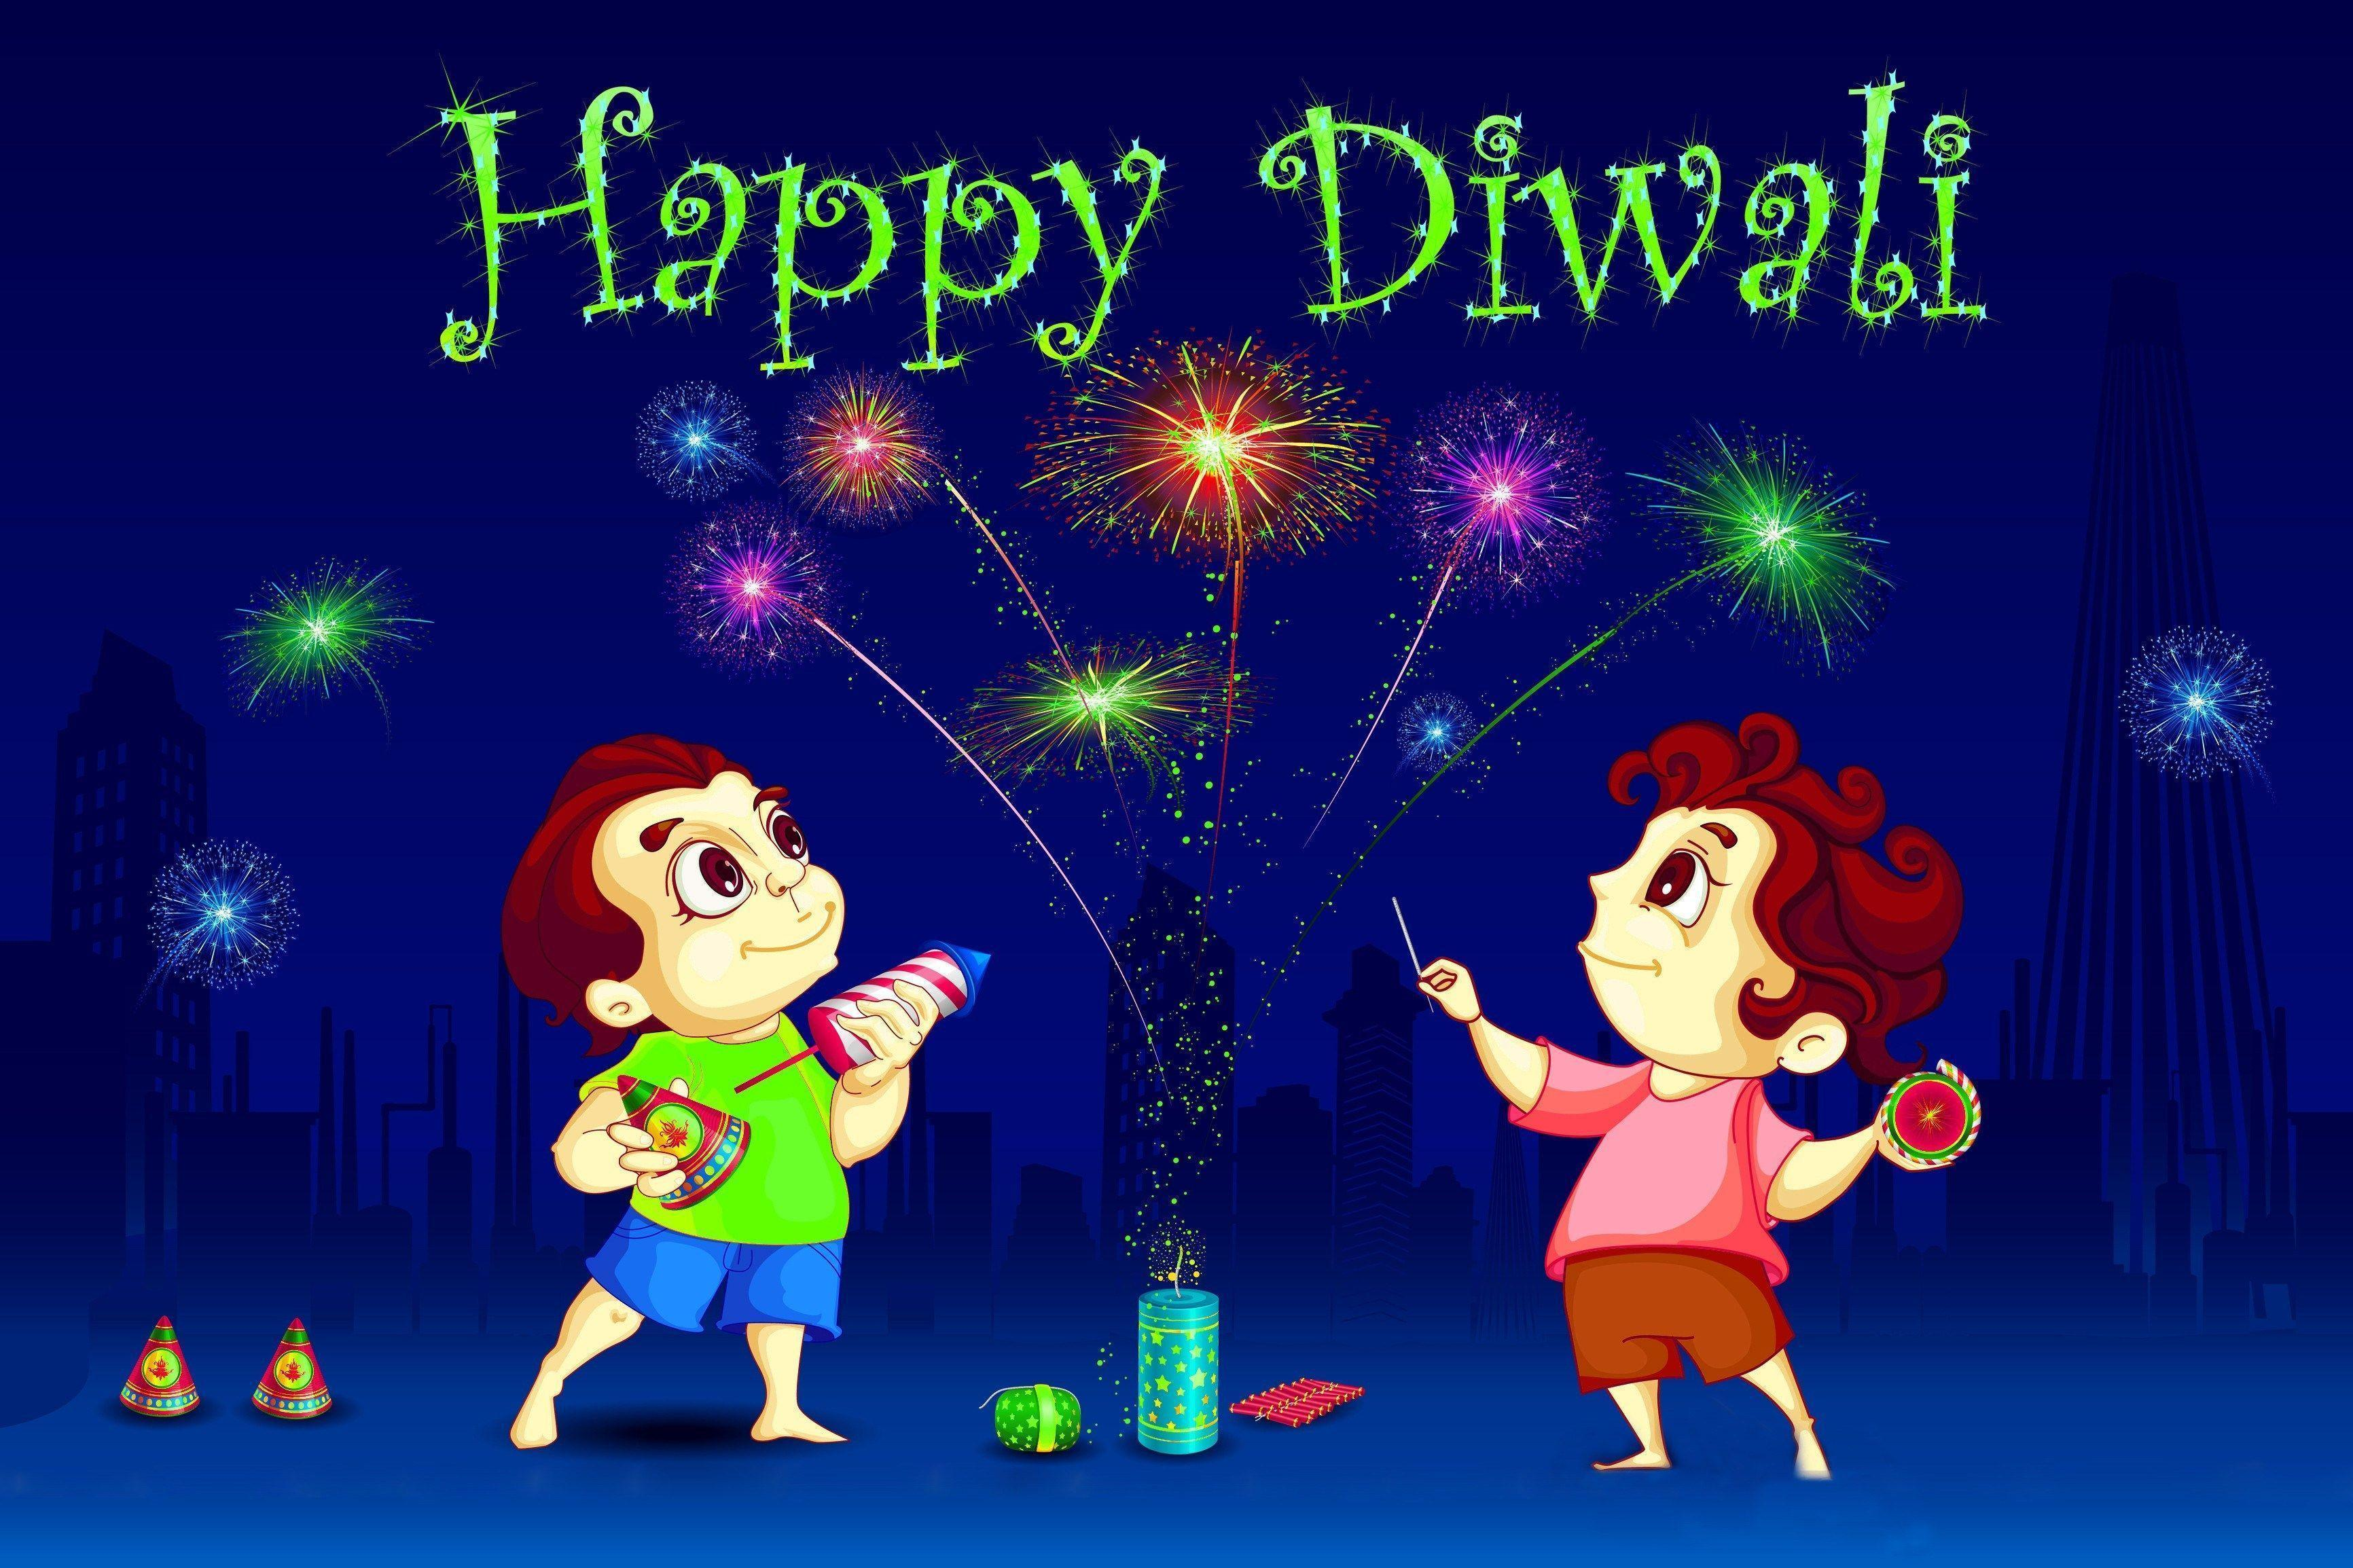 Diwali Wallpapers 2016: Download Free & Latest HD Diwali Wallpapers